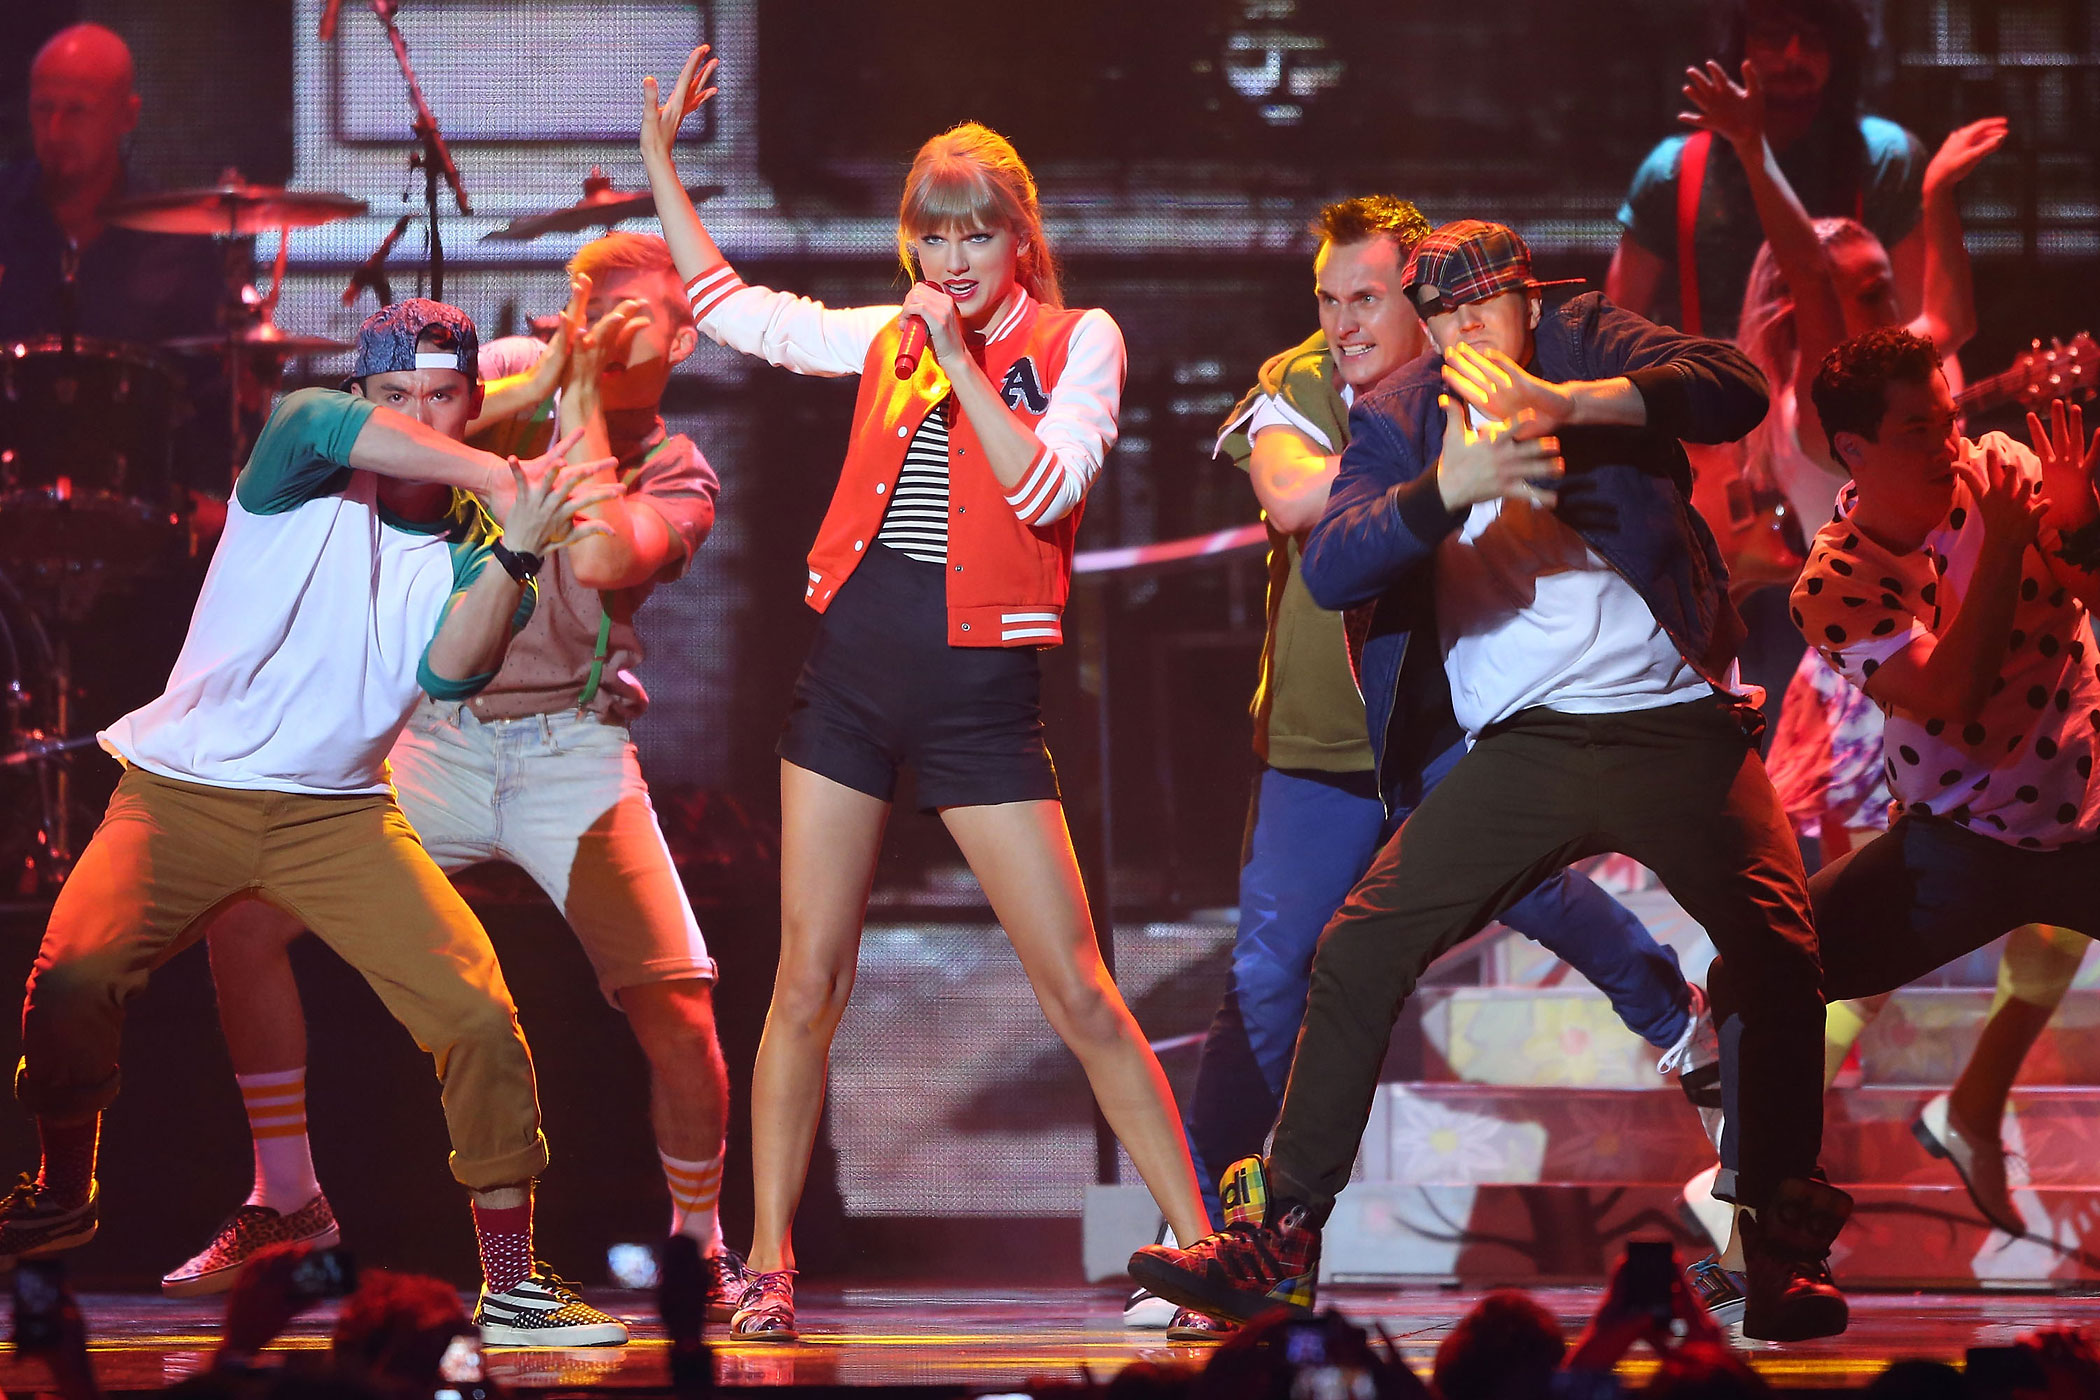 Taylor Swift performs on stage during the 26th Annual ARIA Awards 2012 at the Sydney Entertainment Centre in Sydney, Australia.